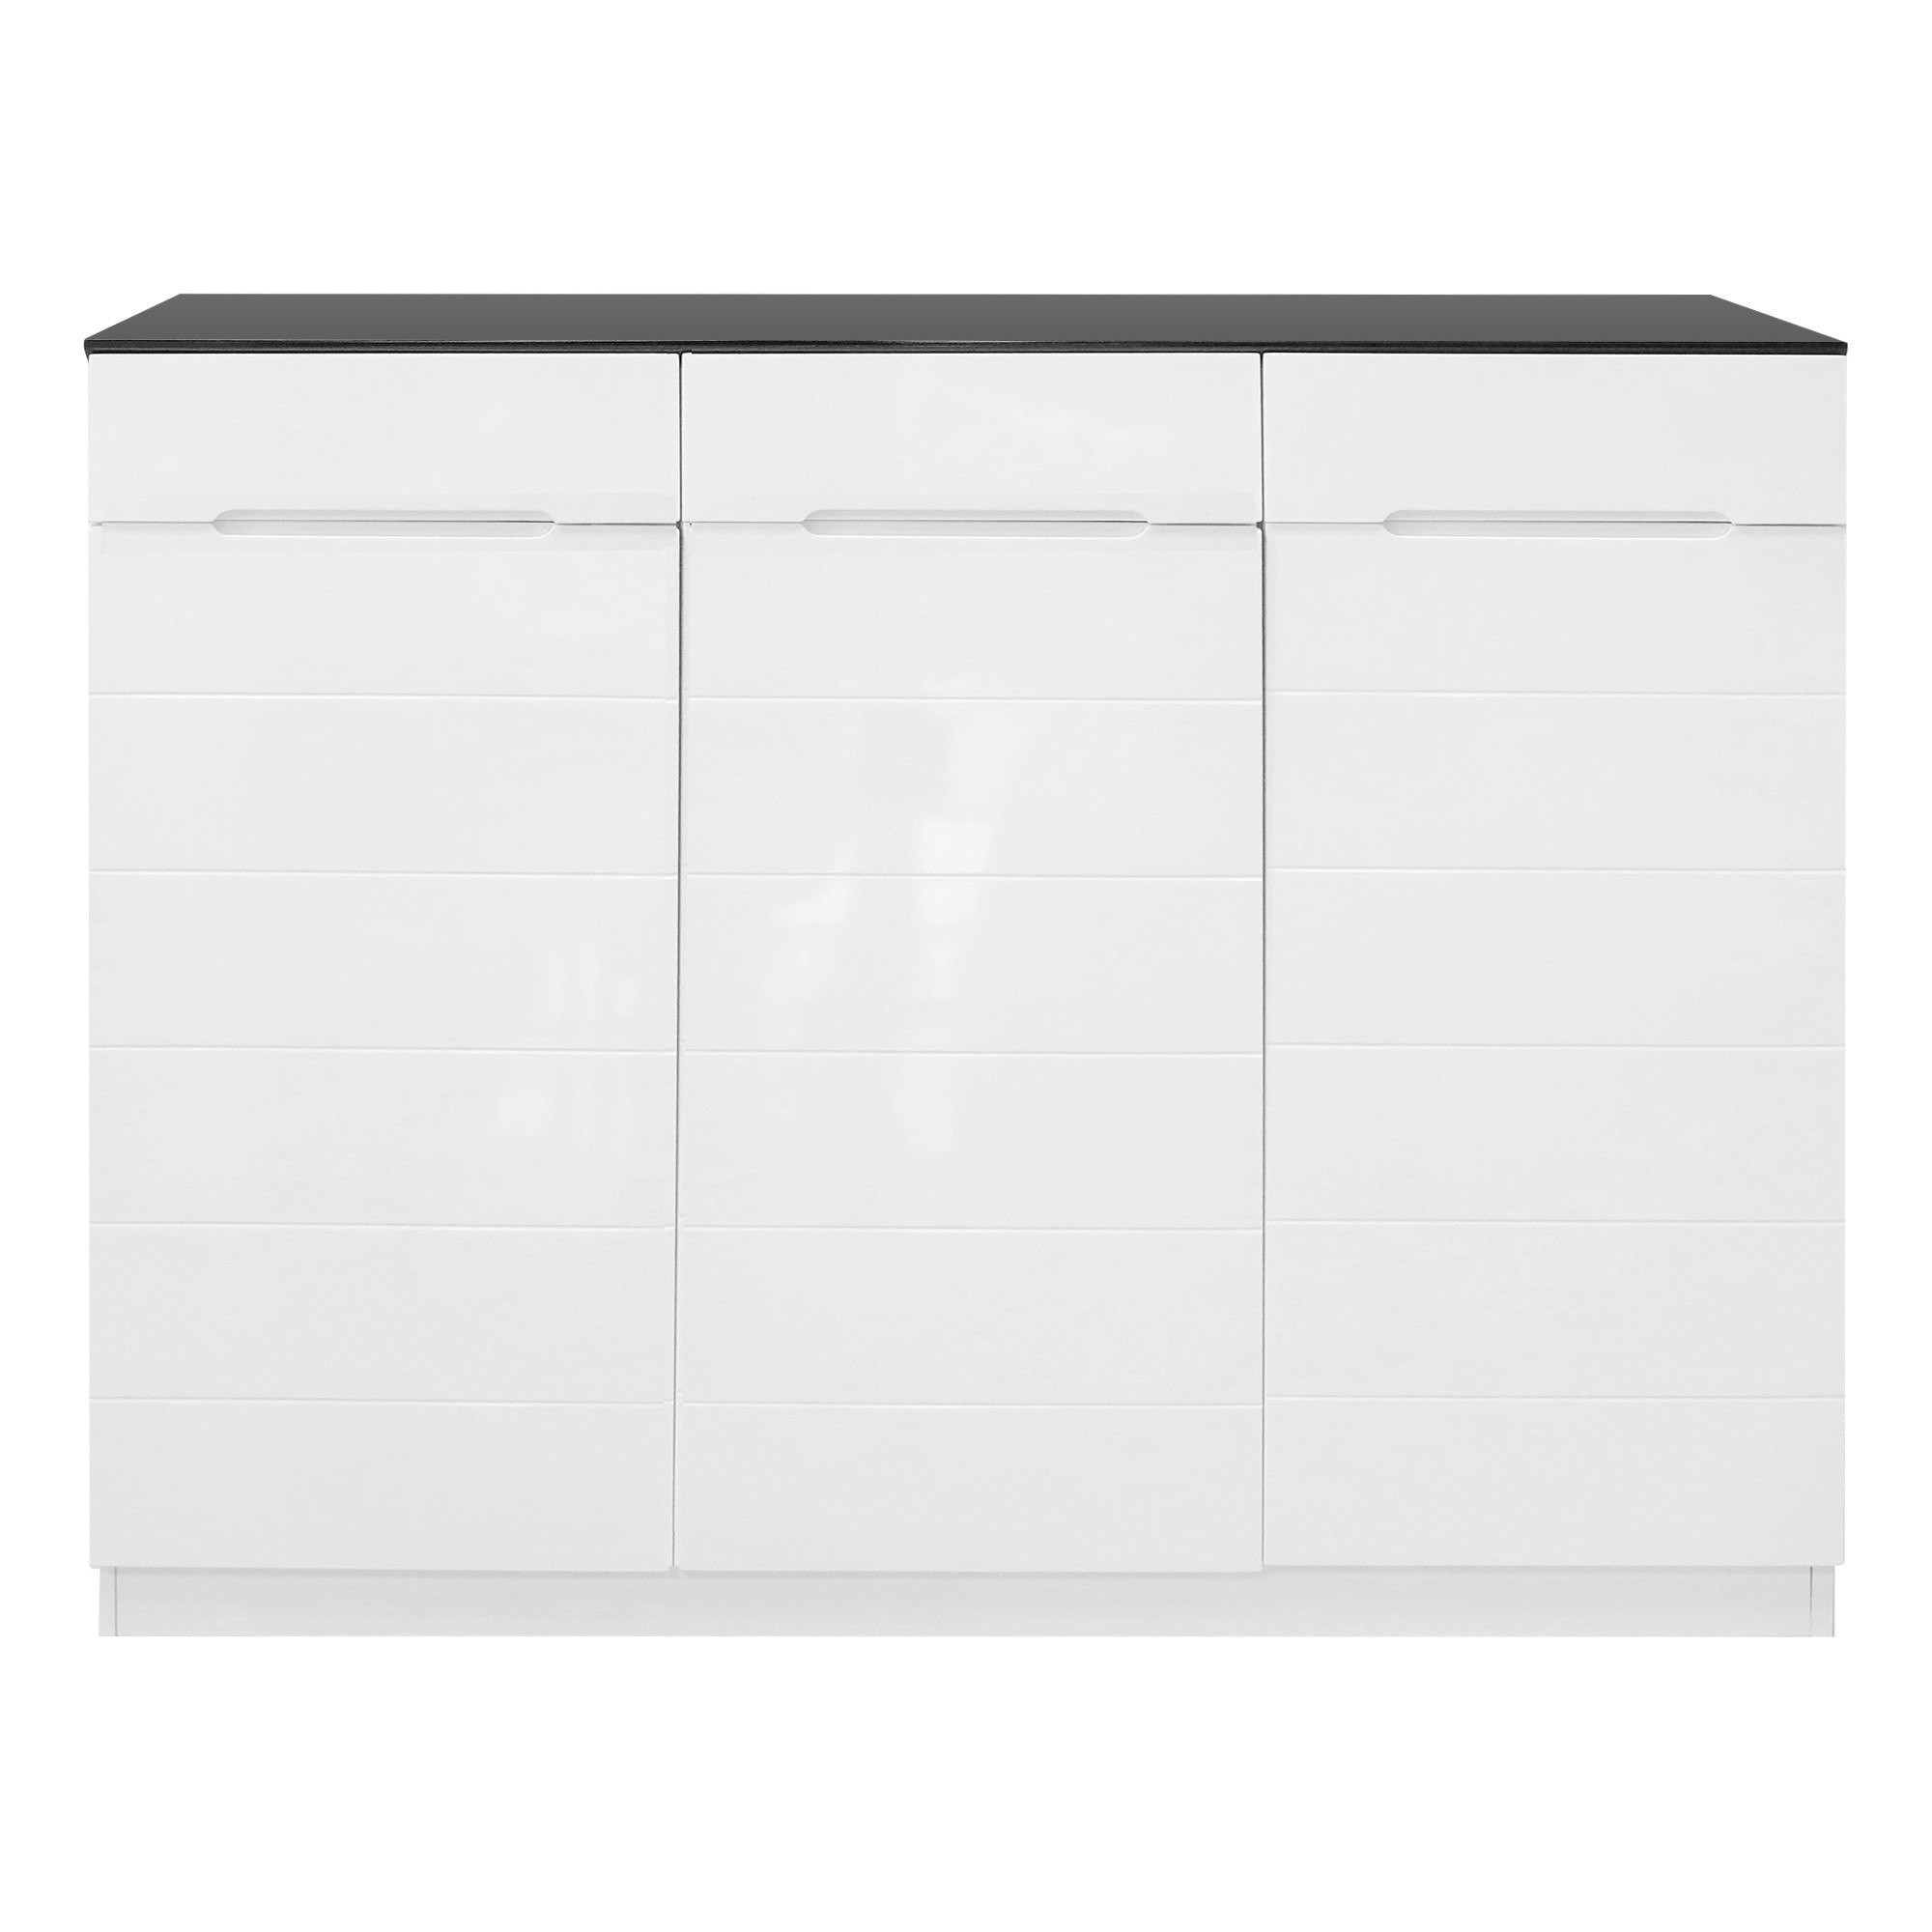 3-Door and 3-Drawer Black and White Shoe Cabinet - 120x101x31.5cm